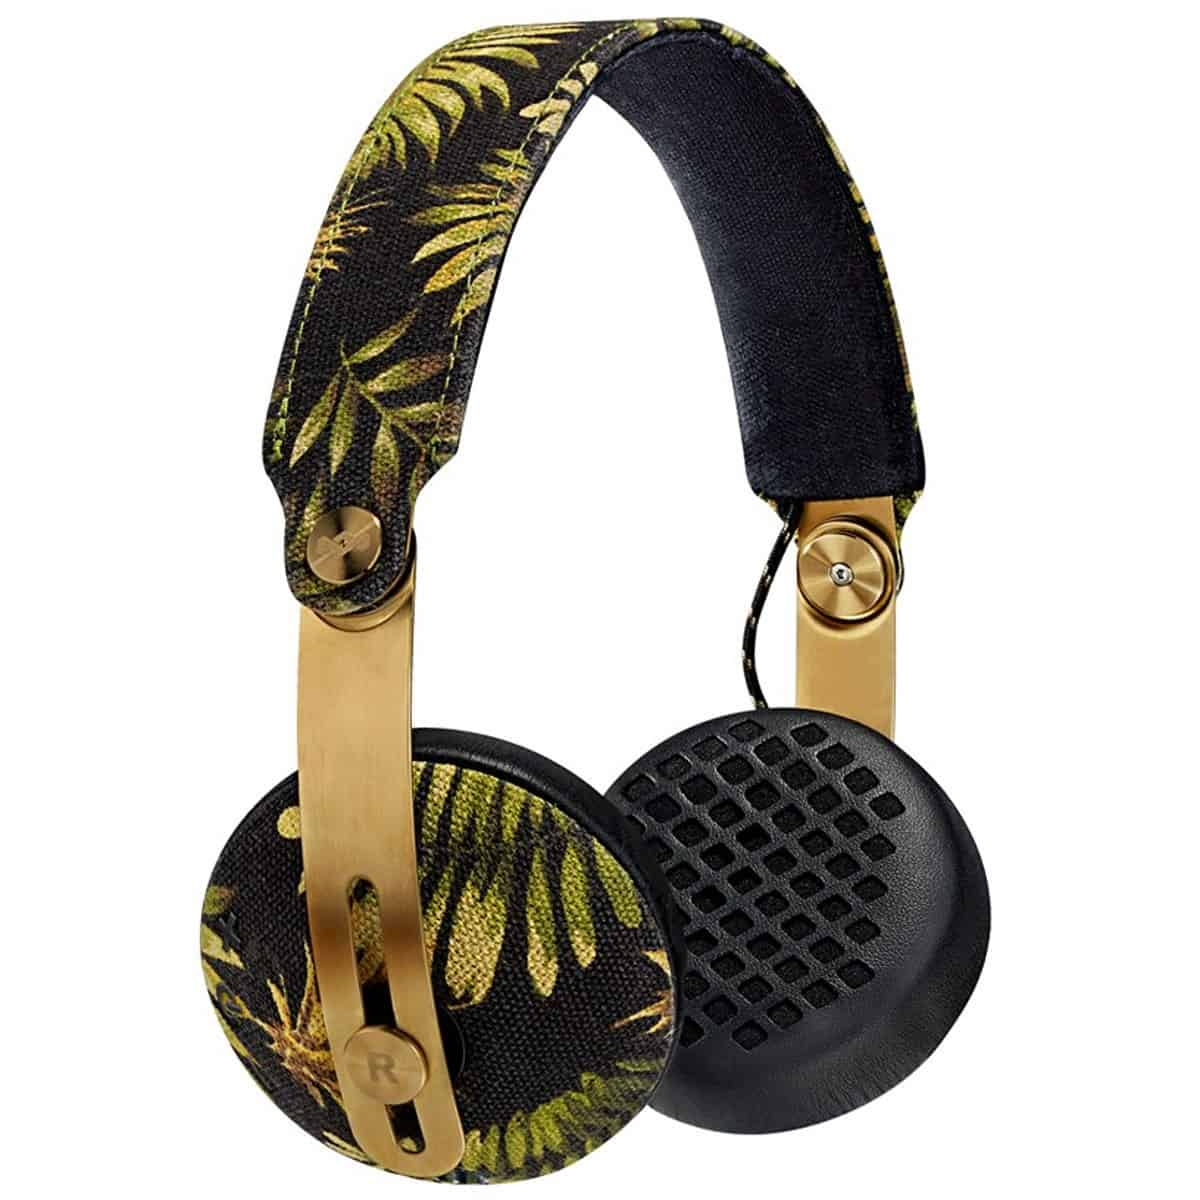 House of Marley Rise BT Wireless Bluetooth Headphones - Palm